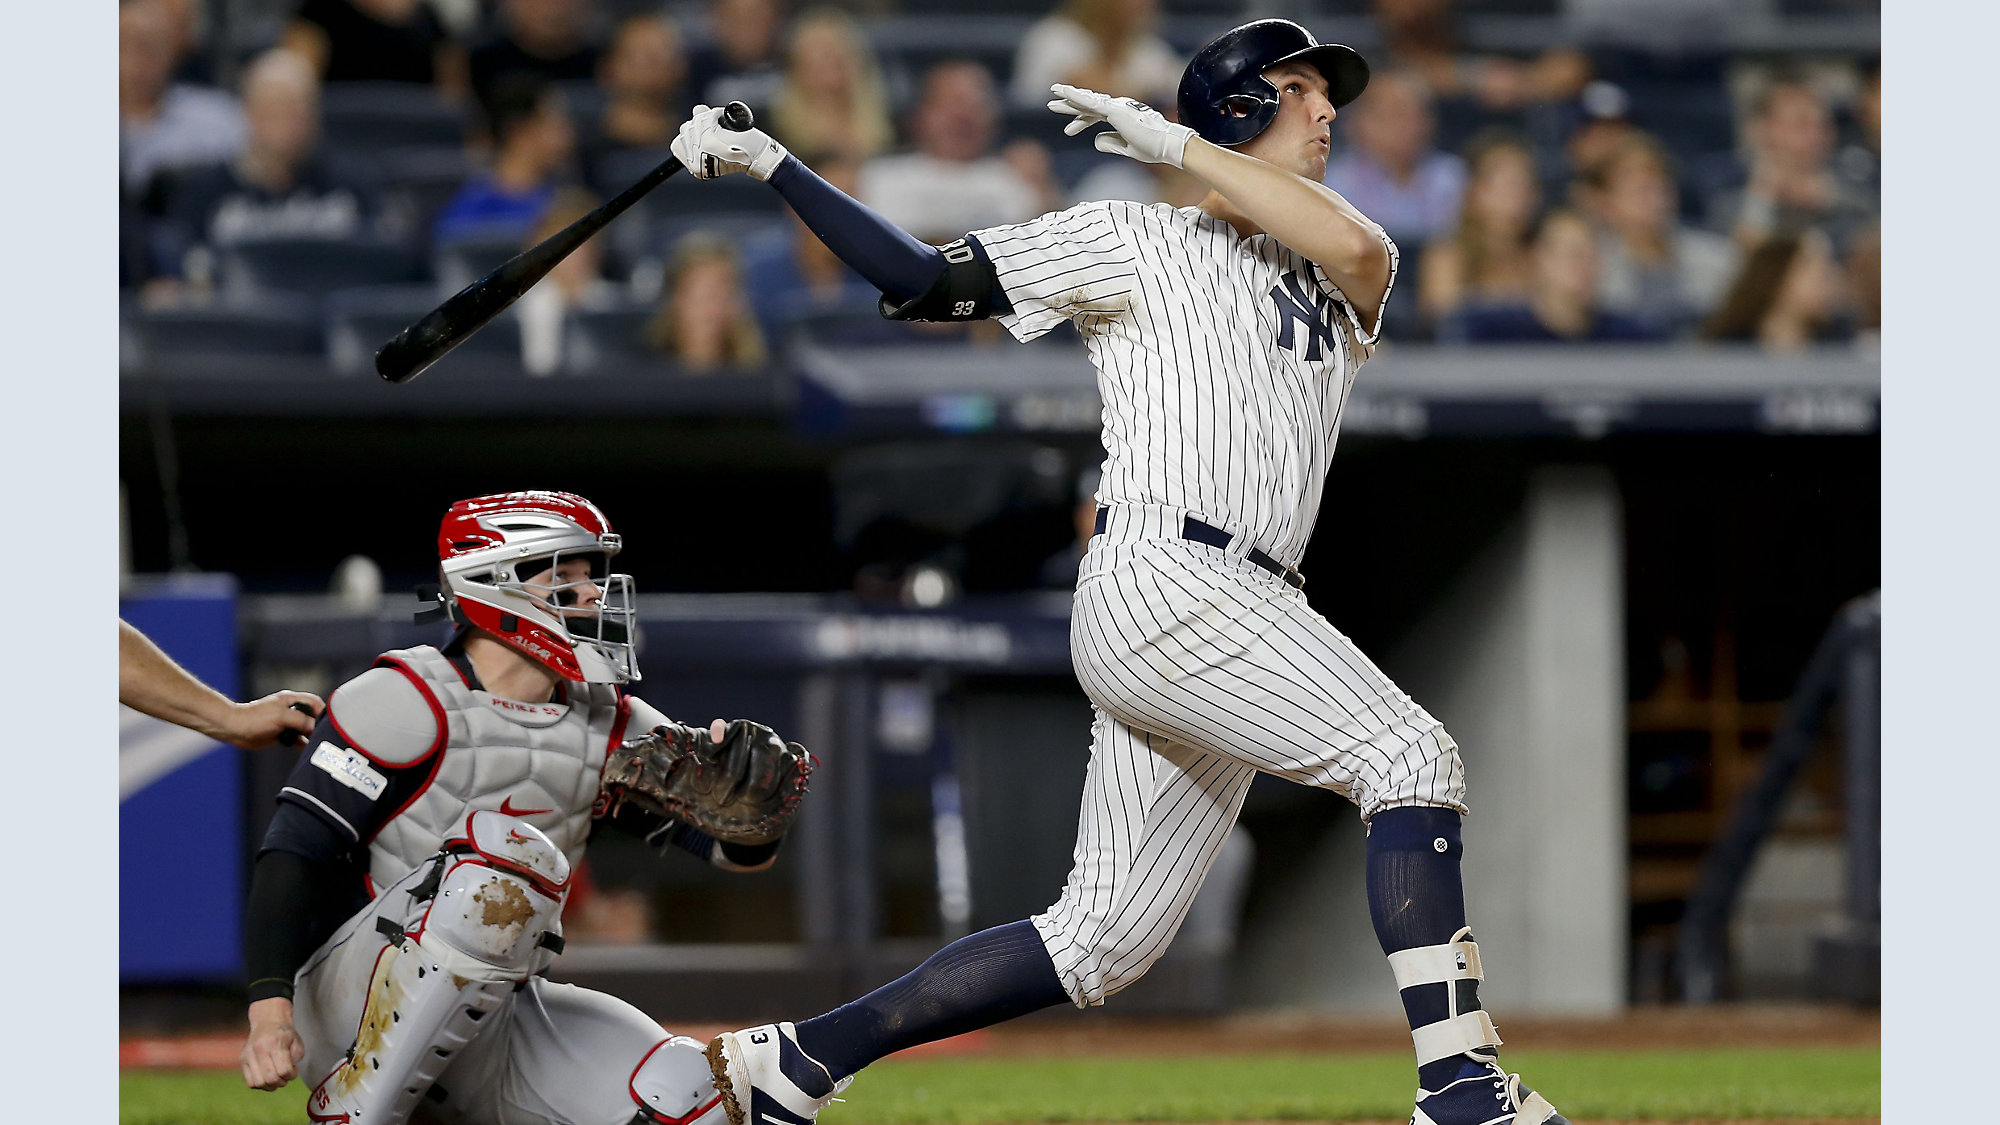 Yankees keep season alive with 1-0 win over Indians